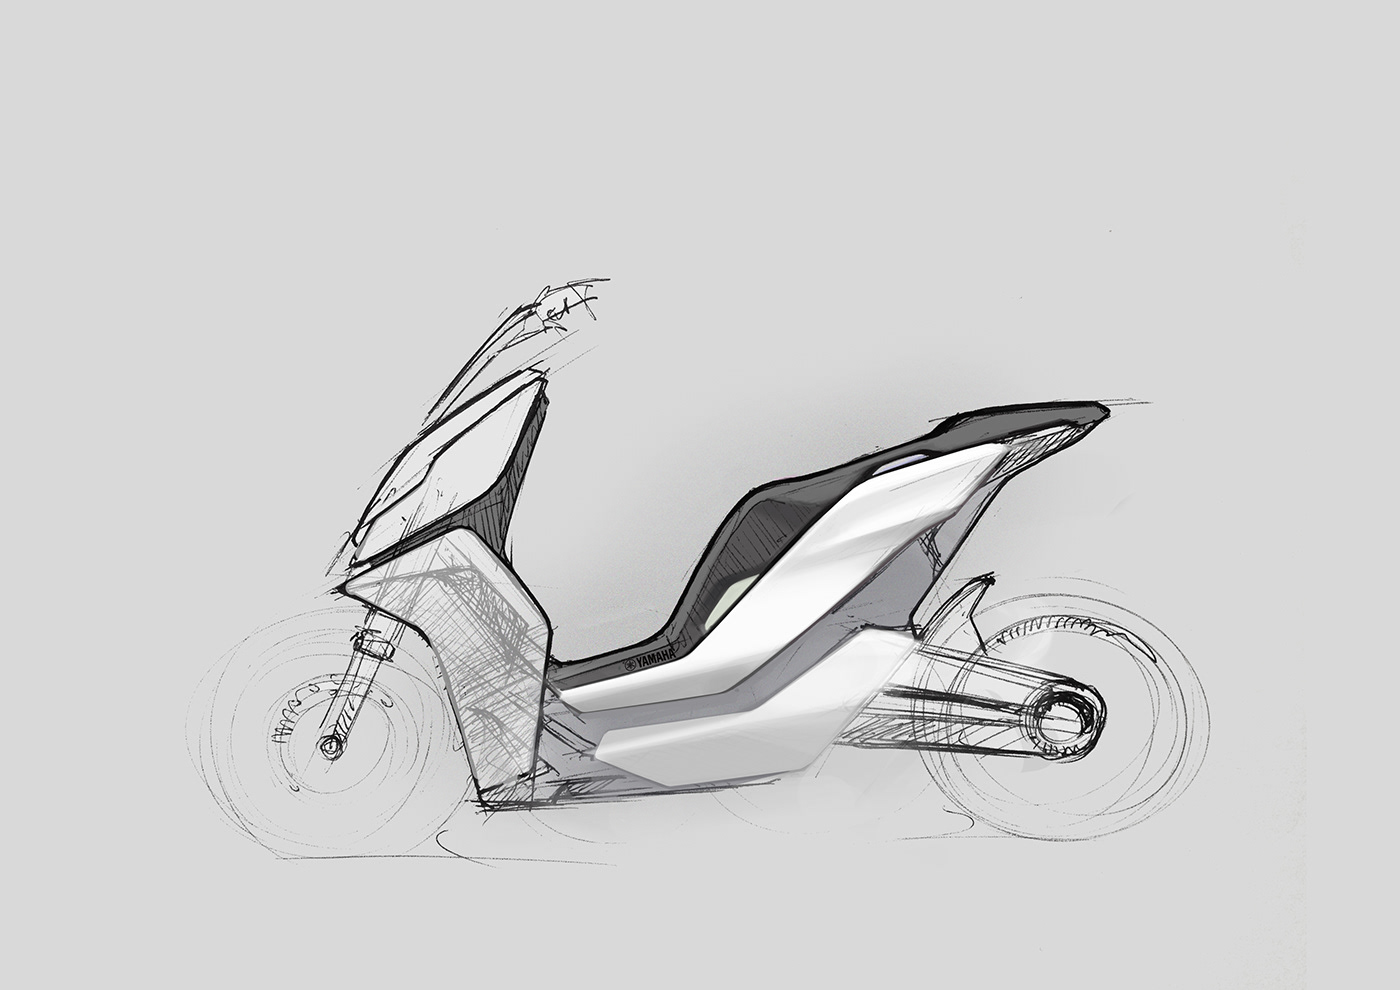 Ebike,Scooter,motor cycle,moto,E-Bike,Commuter,roller,urban mobility